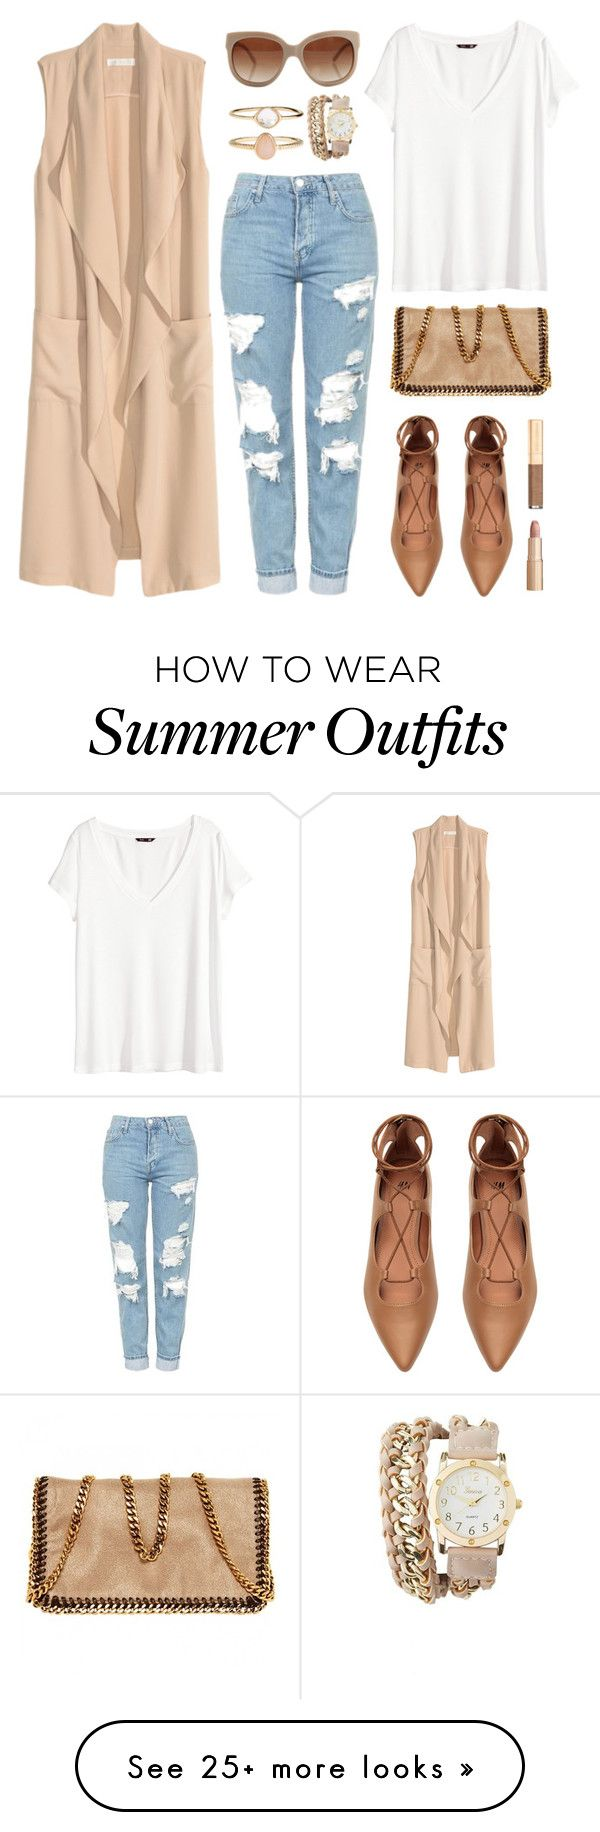 """summer to fall outfit inspiration"" by anja-jovanovich on Polyvore featuring H&M, Topshop, Accessorize, STELLA McCARTNEY, Charlotte Russe, Dolce&Gabbana and Charlotte Tilbury"